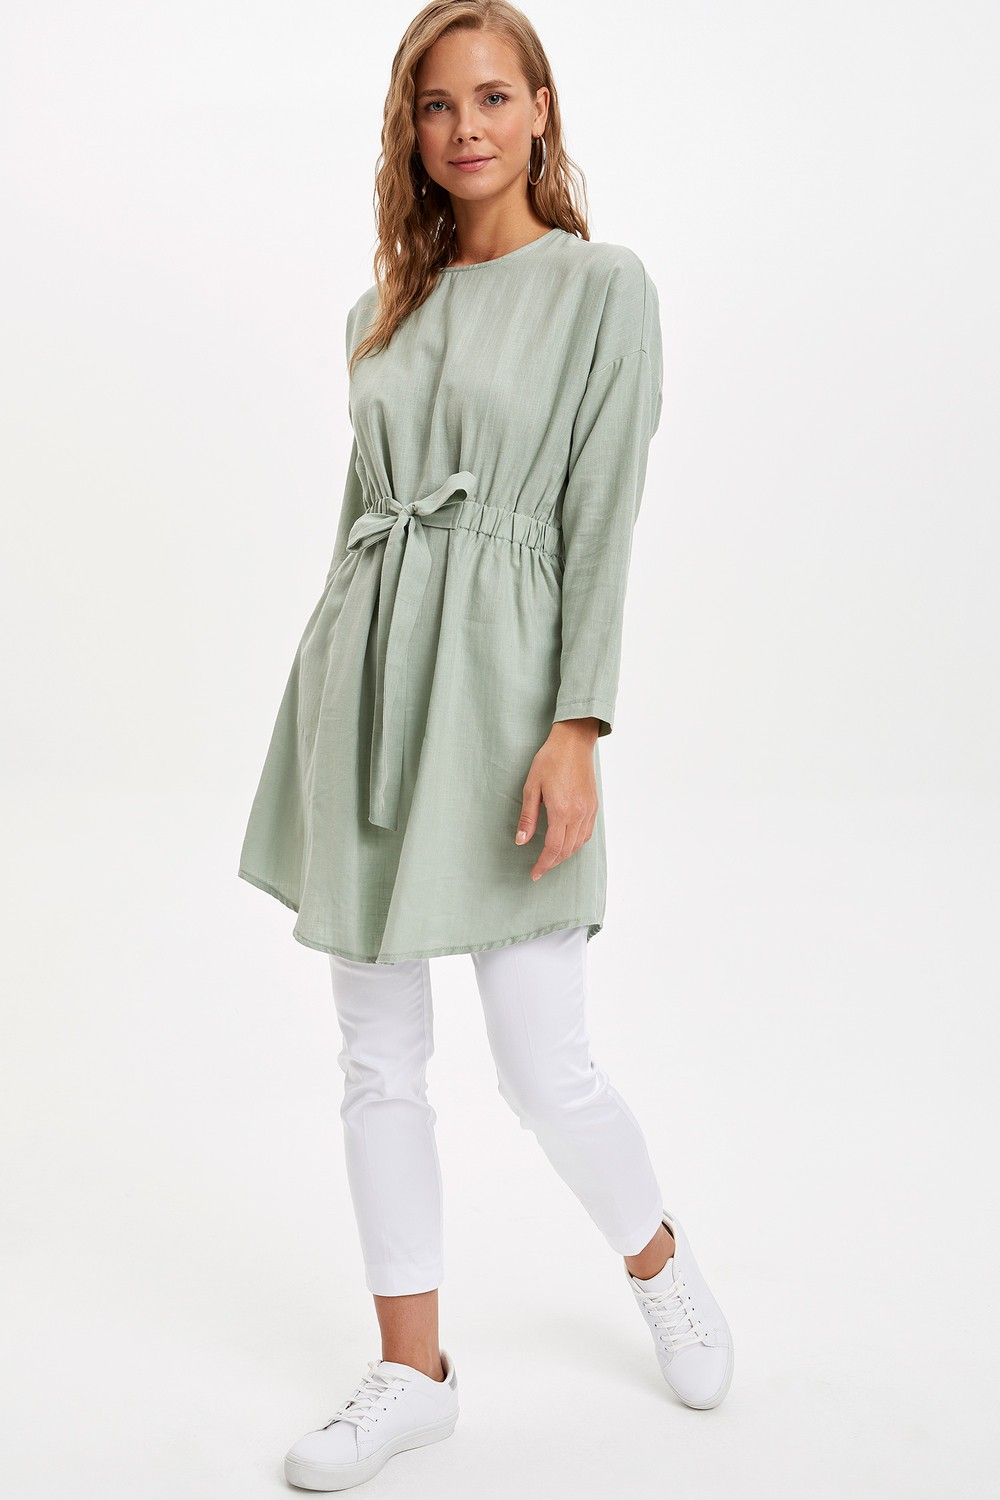 DeFacto Women's Solid Tunic